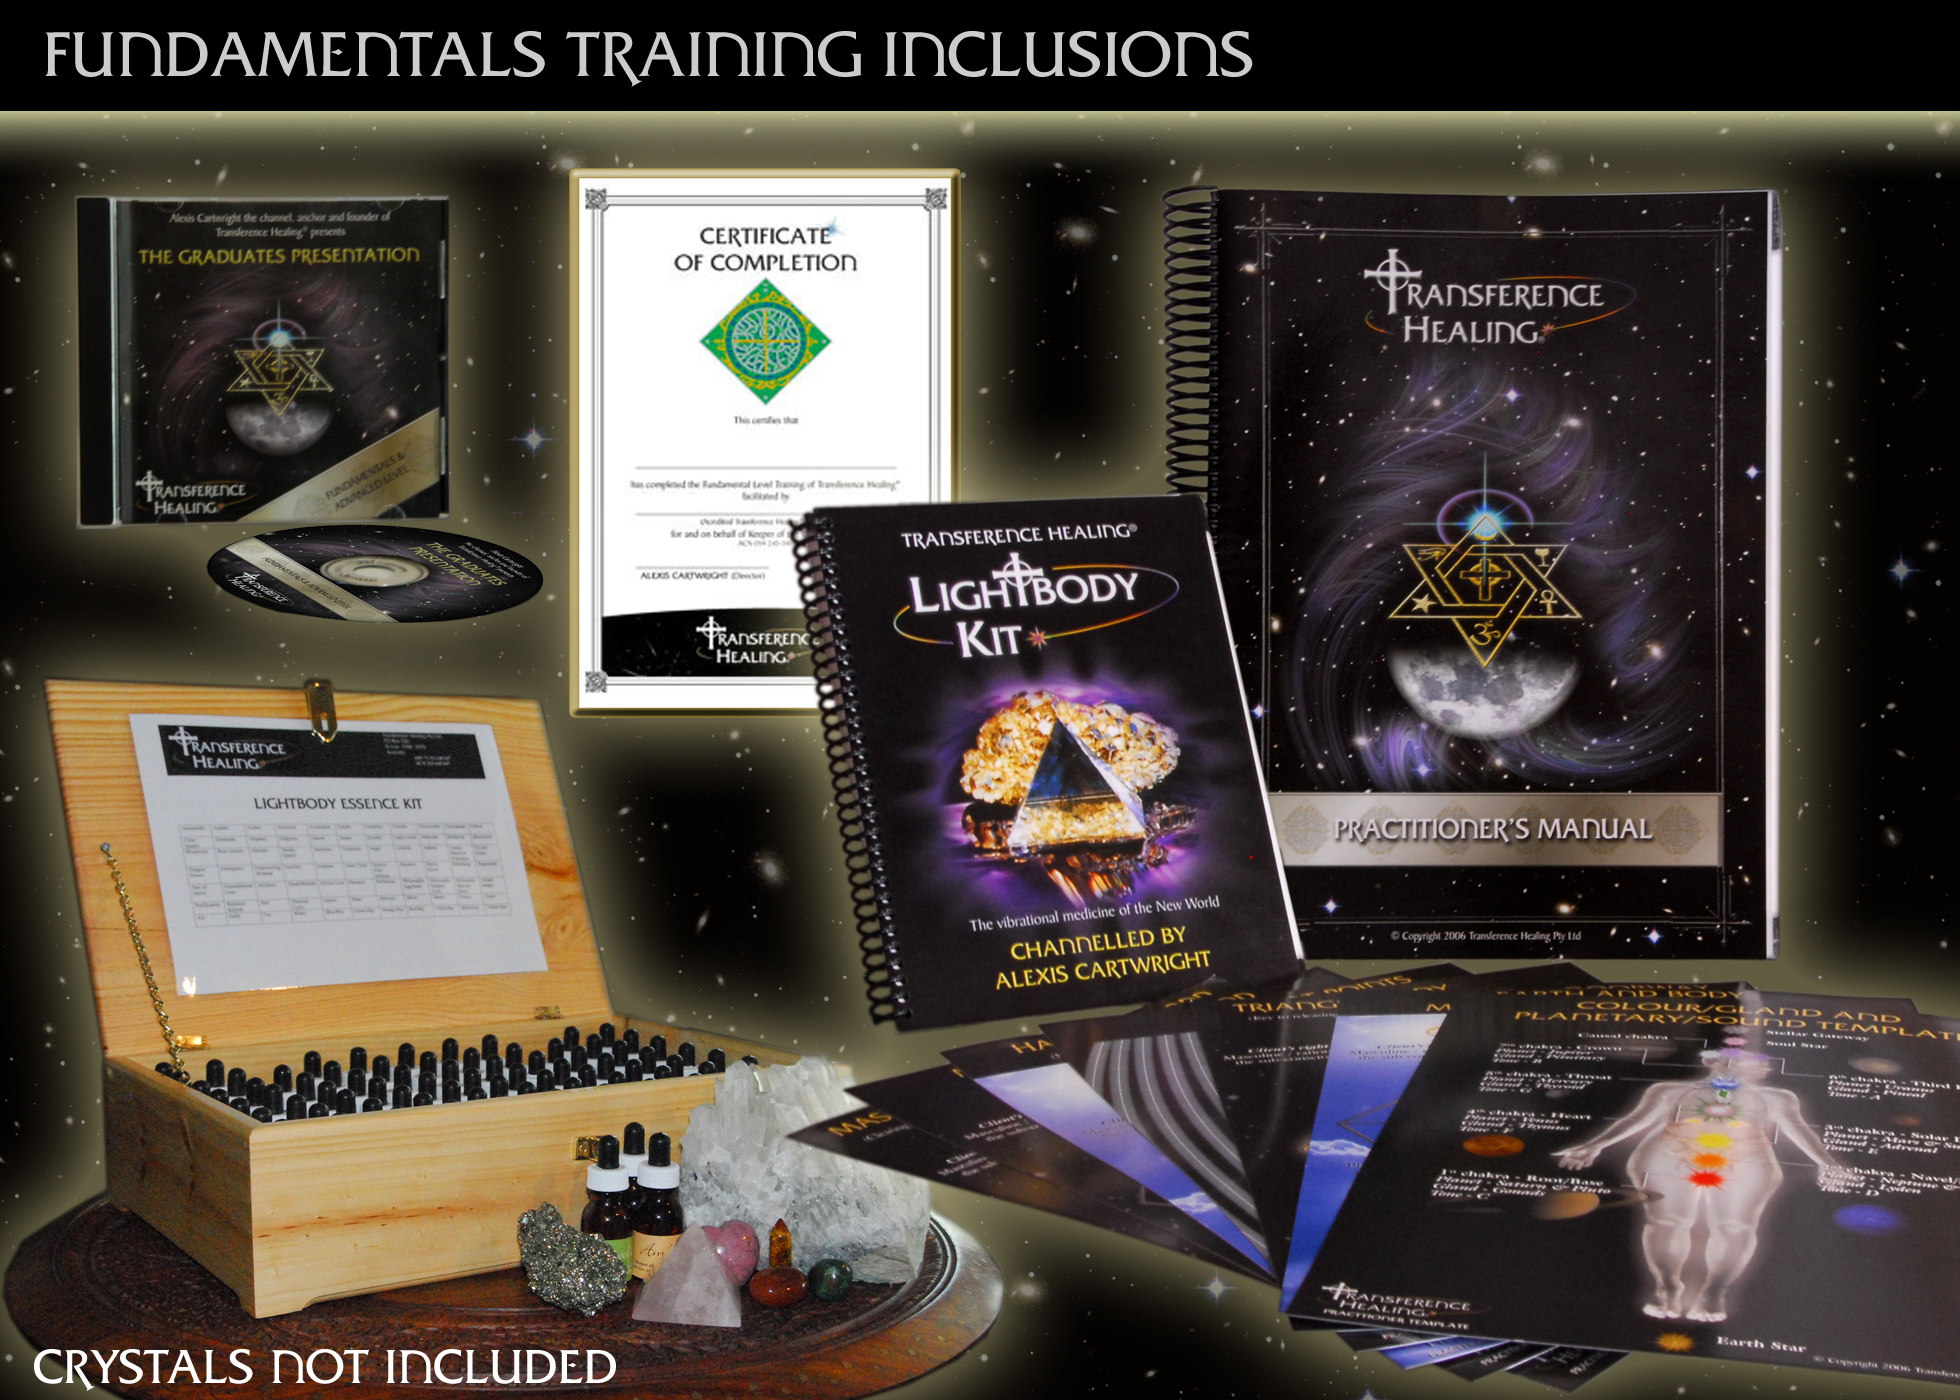 FUNDAMENTAL TRAINING INCLUSIONS